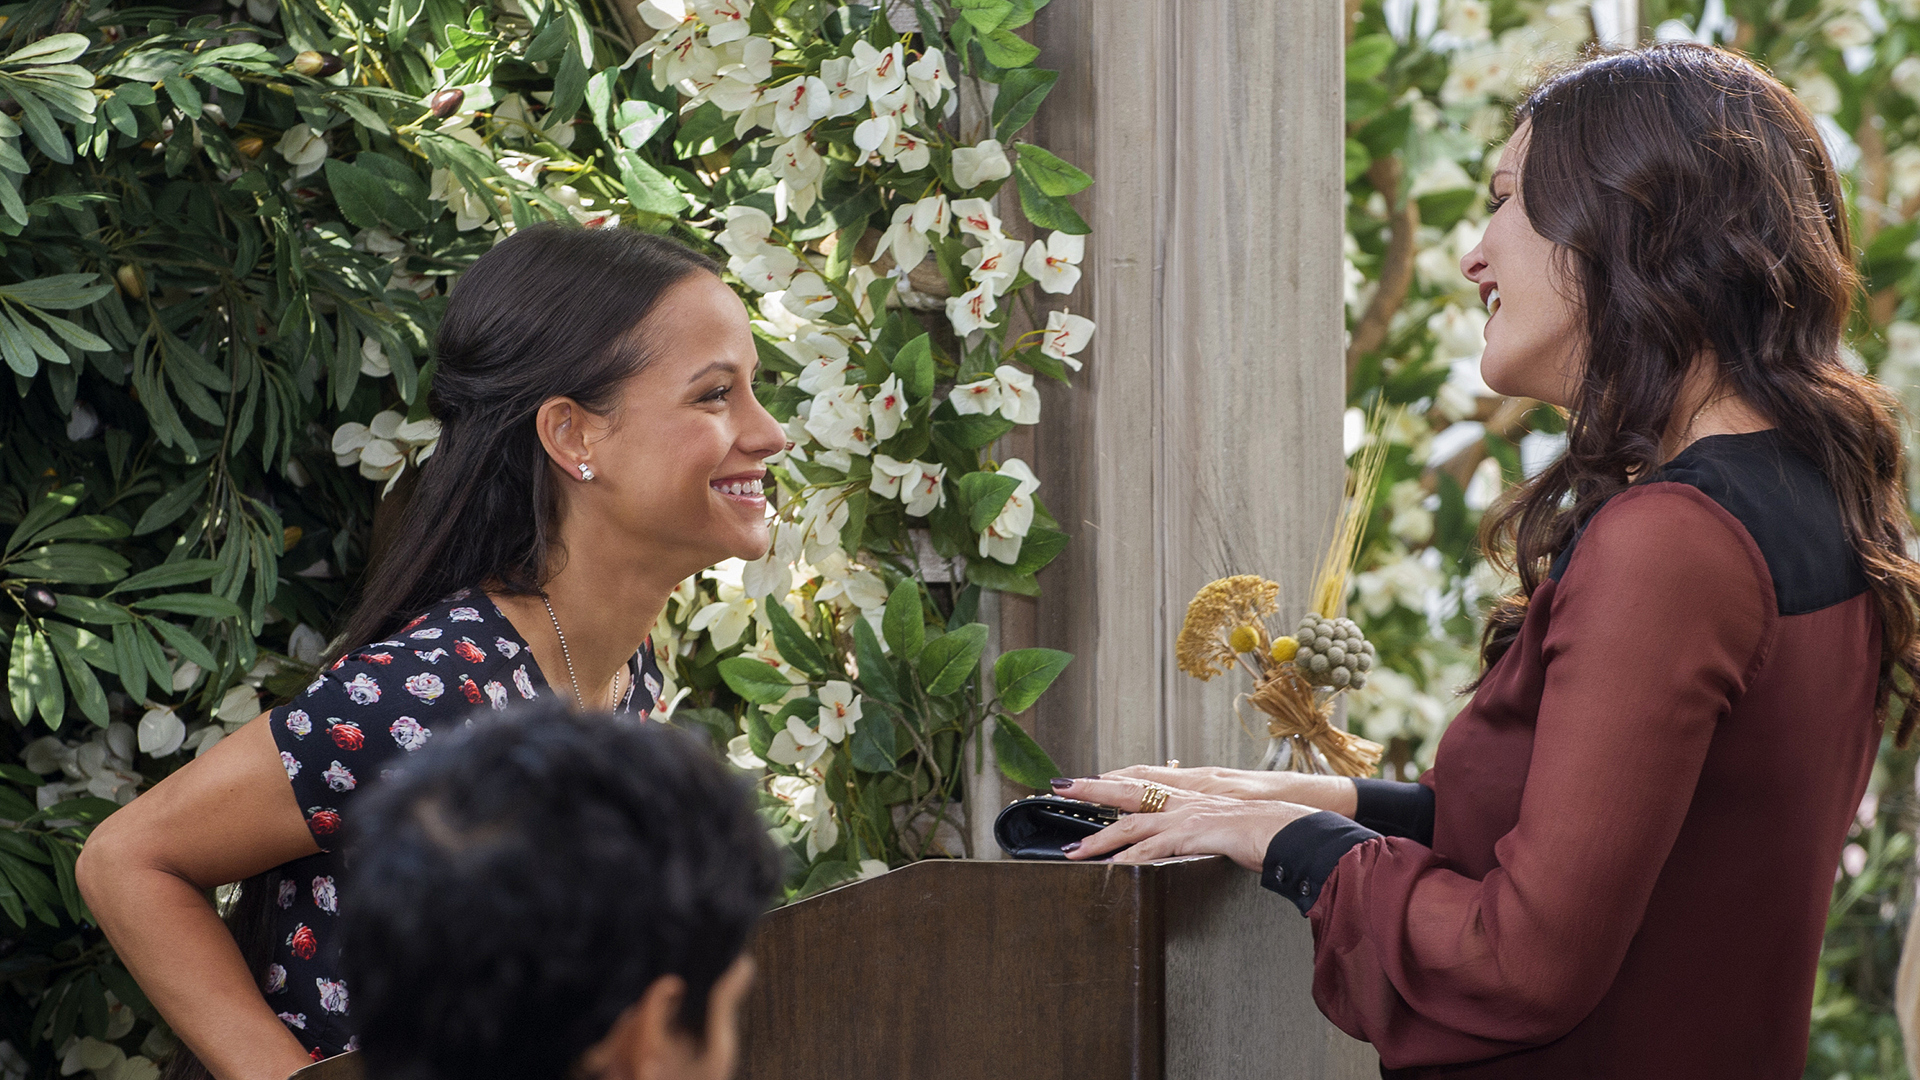 Jessica and The Bold and the Beautiful's Heather Tom have a laugh on set.